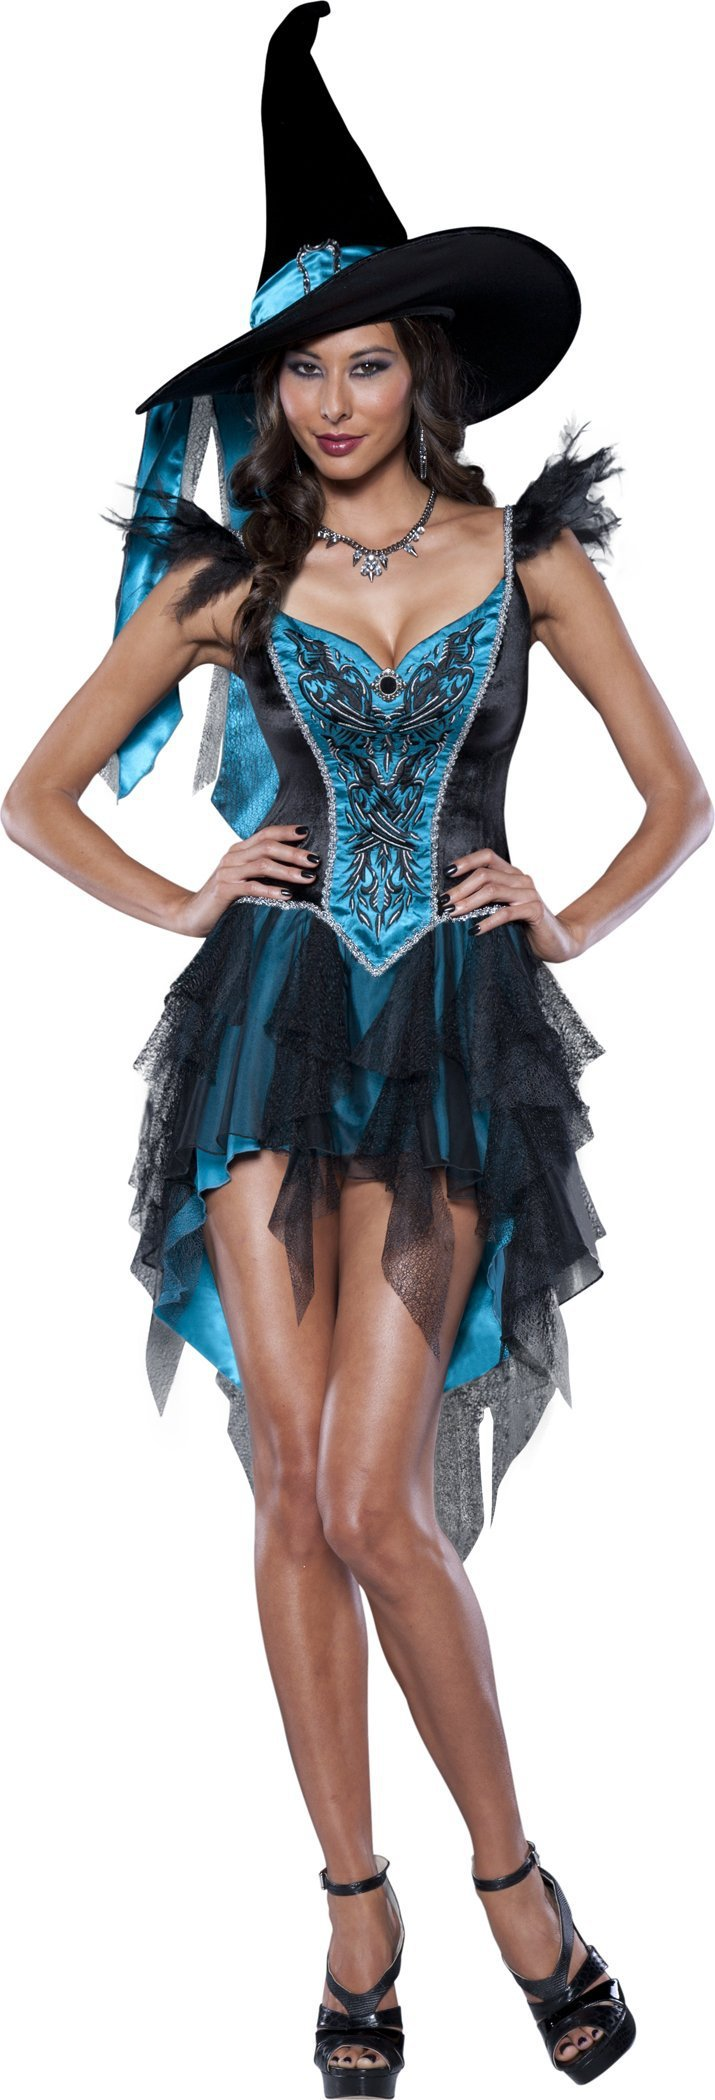 InCharacter Costumes MEDIUM Adult Enchanting Witch Deluxe Costume